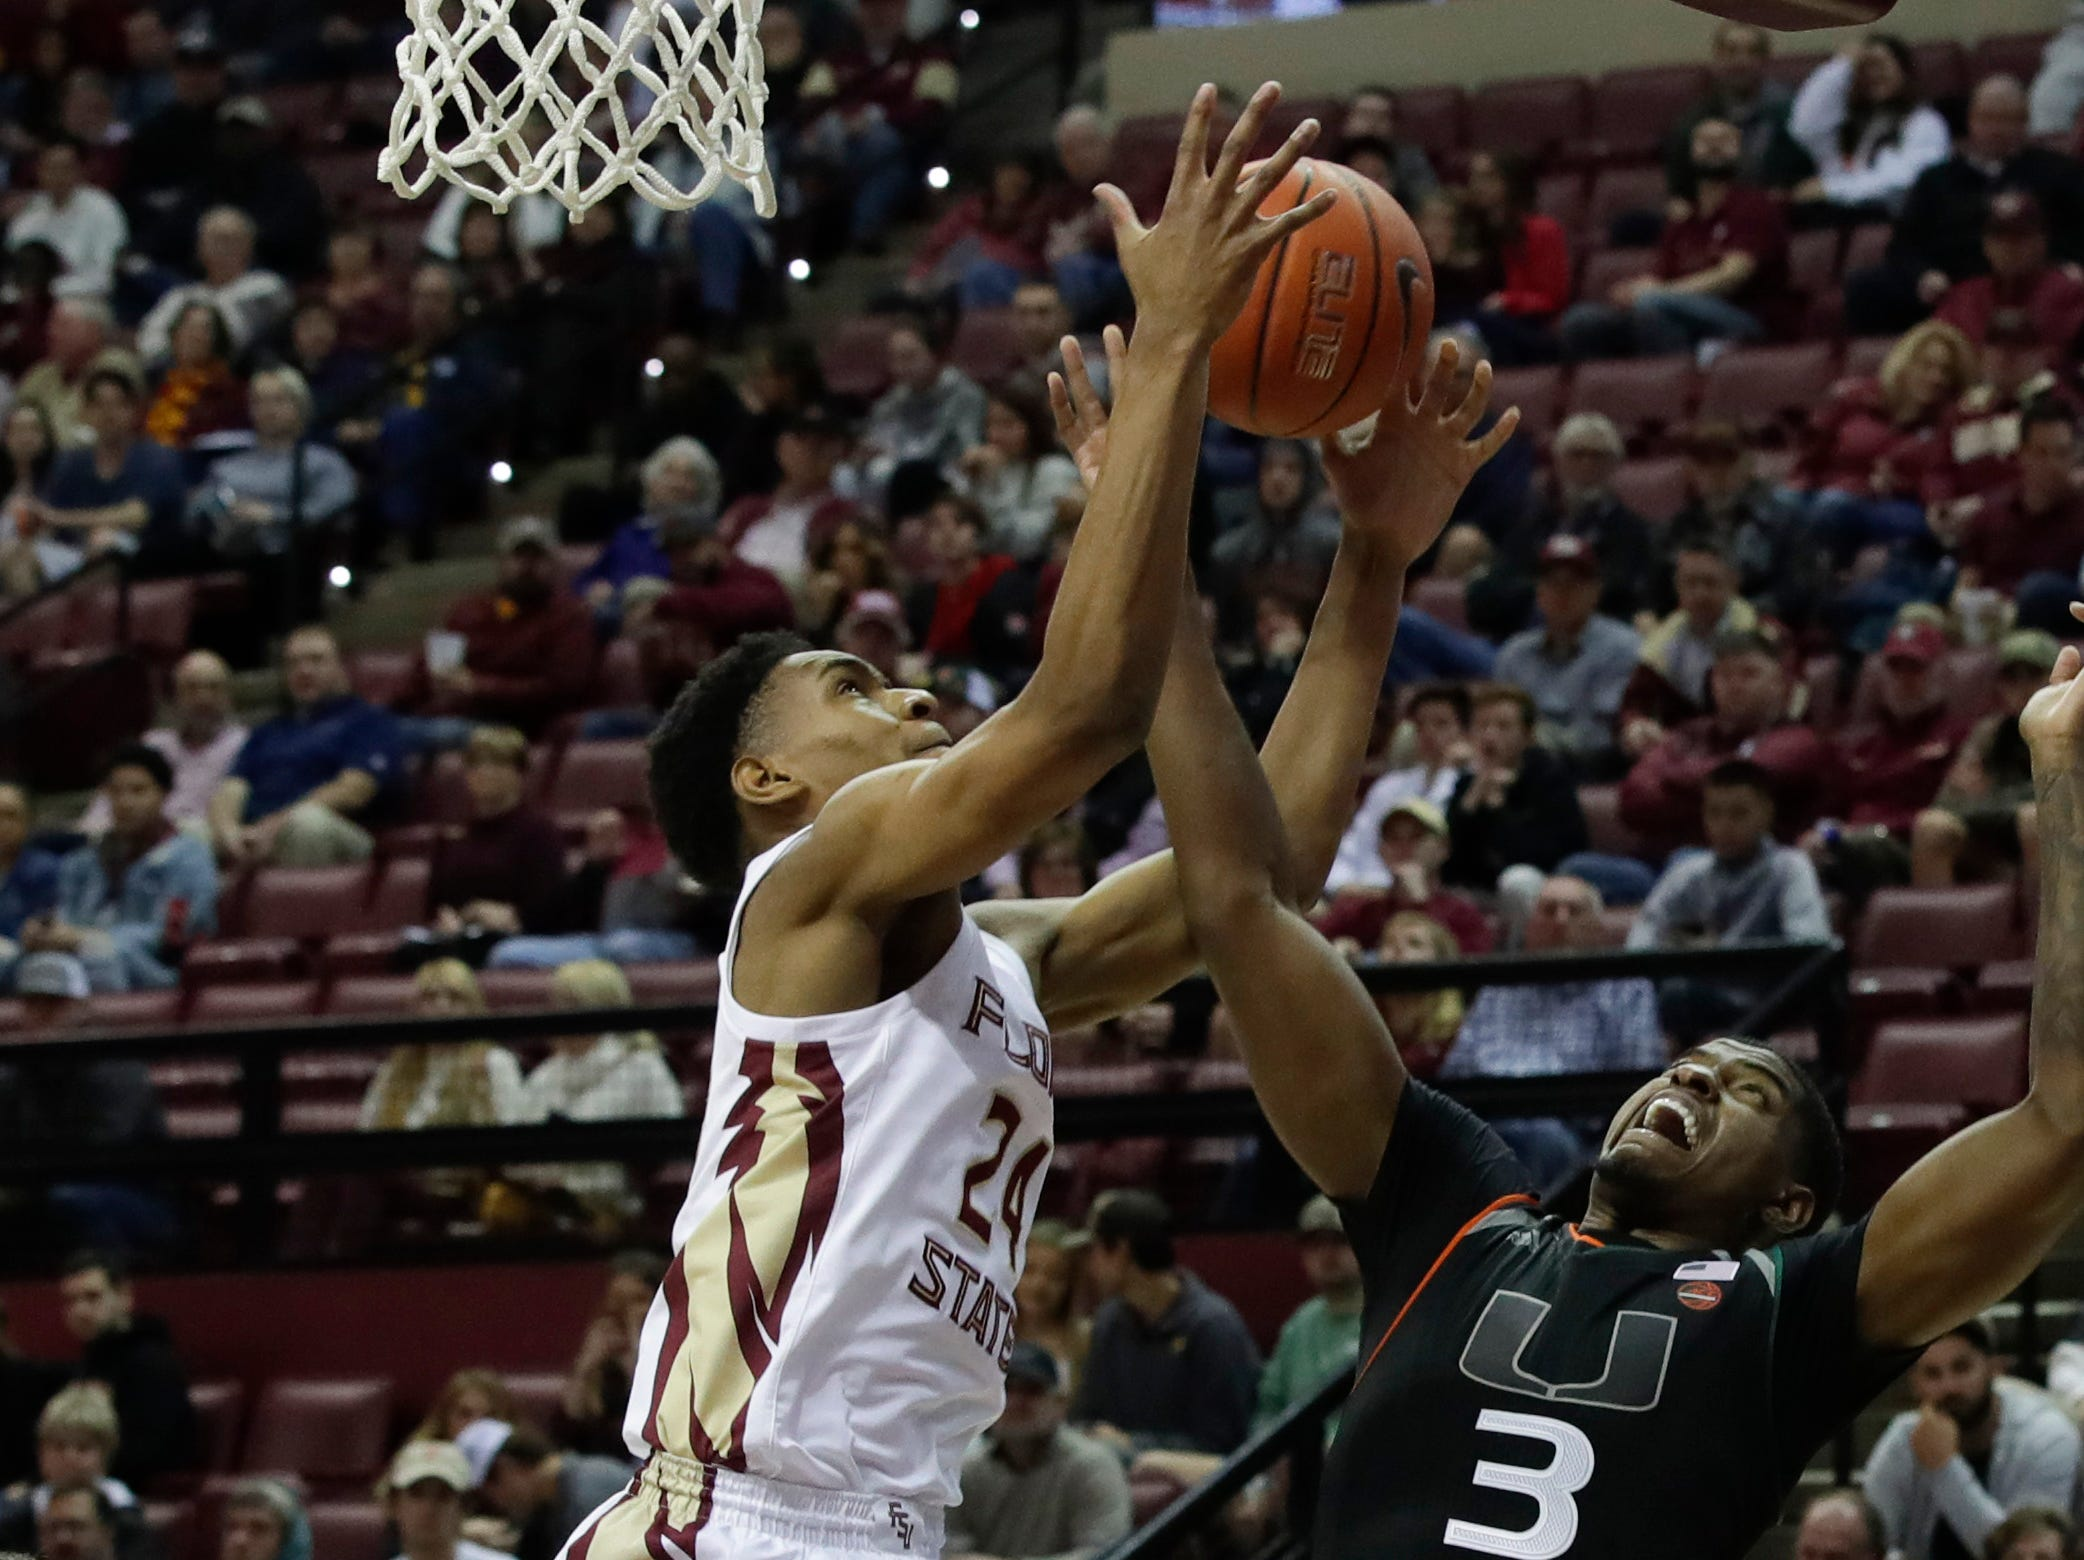 Florida State Seminoles guard Devin Vassell (24) grabs a rebound during a game between FSU and University of Miami Wednesday, Jan. 9, 2019.